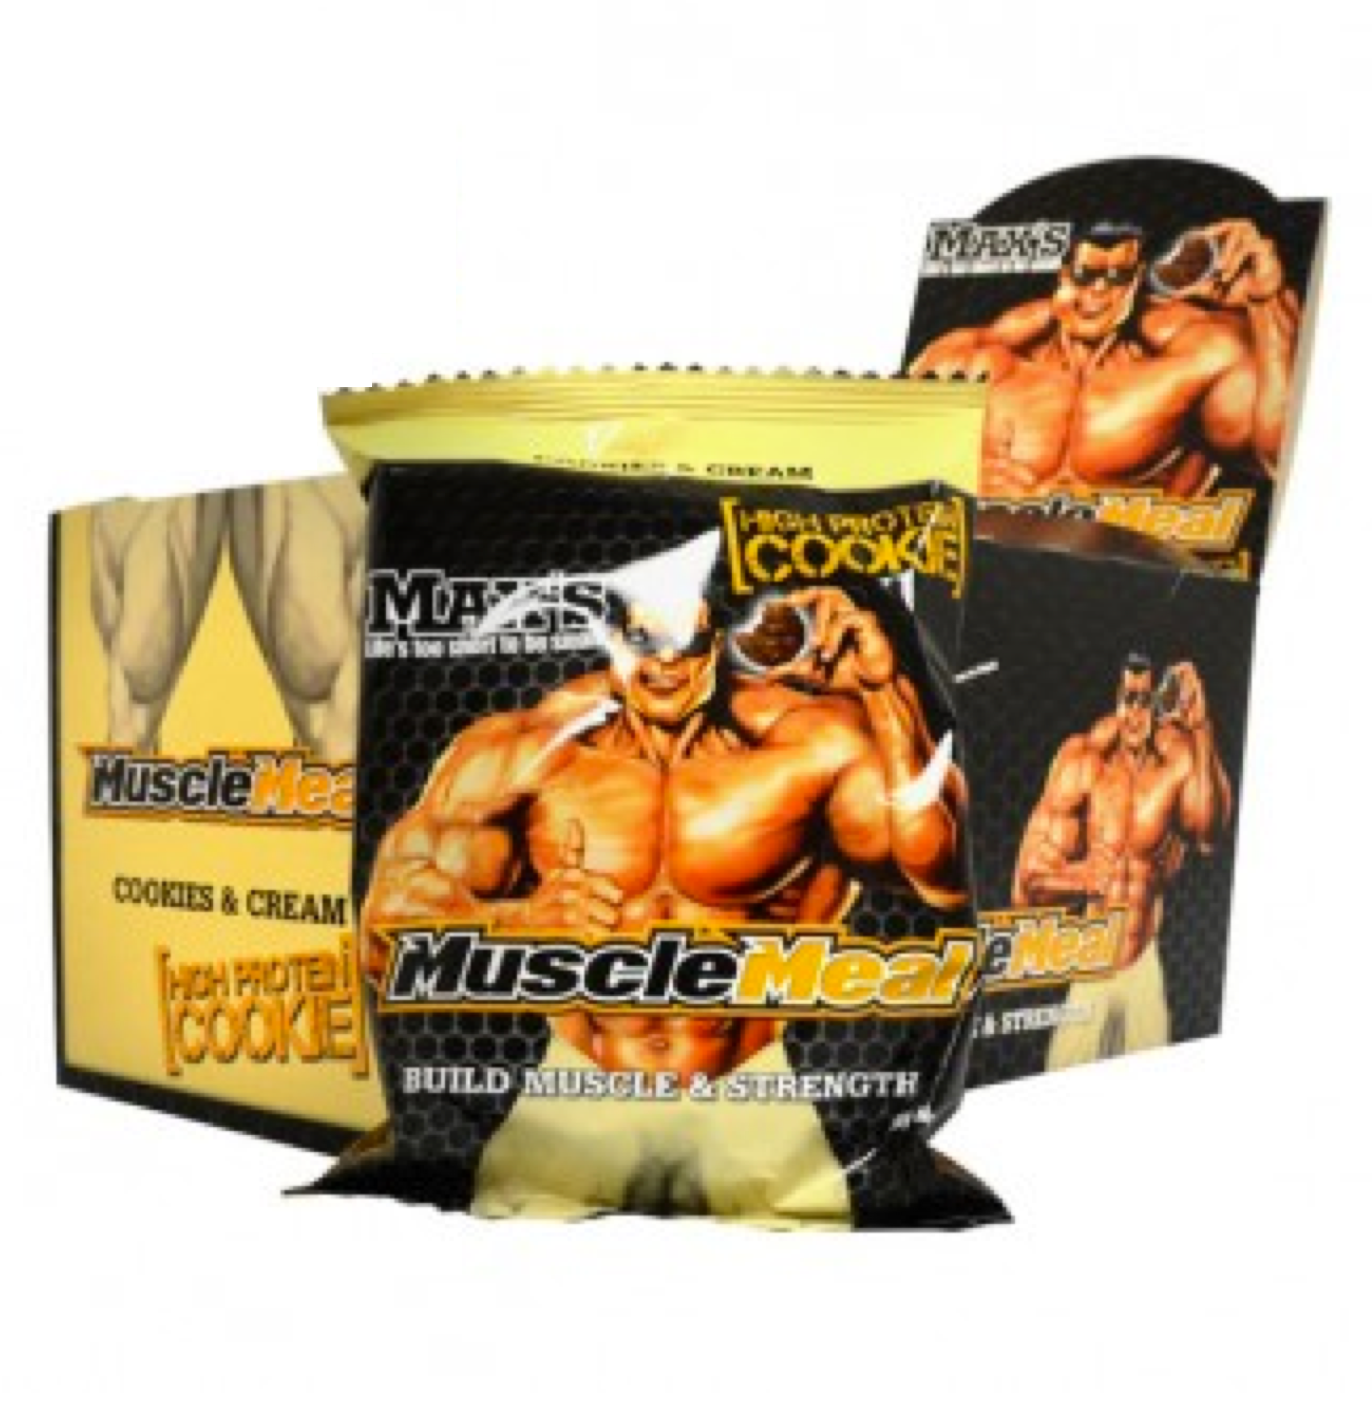 Maxs-Muscle-Meal-Protein-Cookie-Box-of-12-cookies